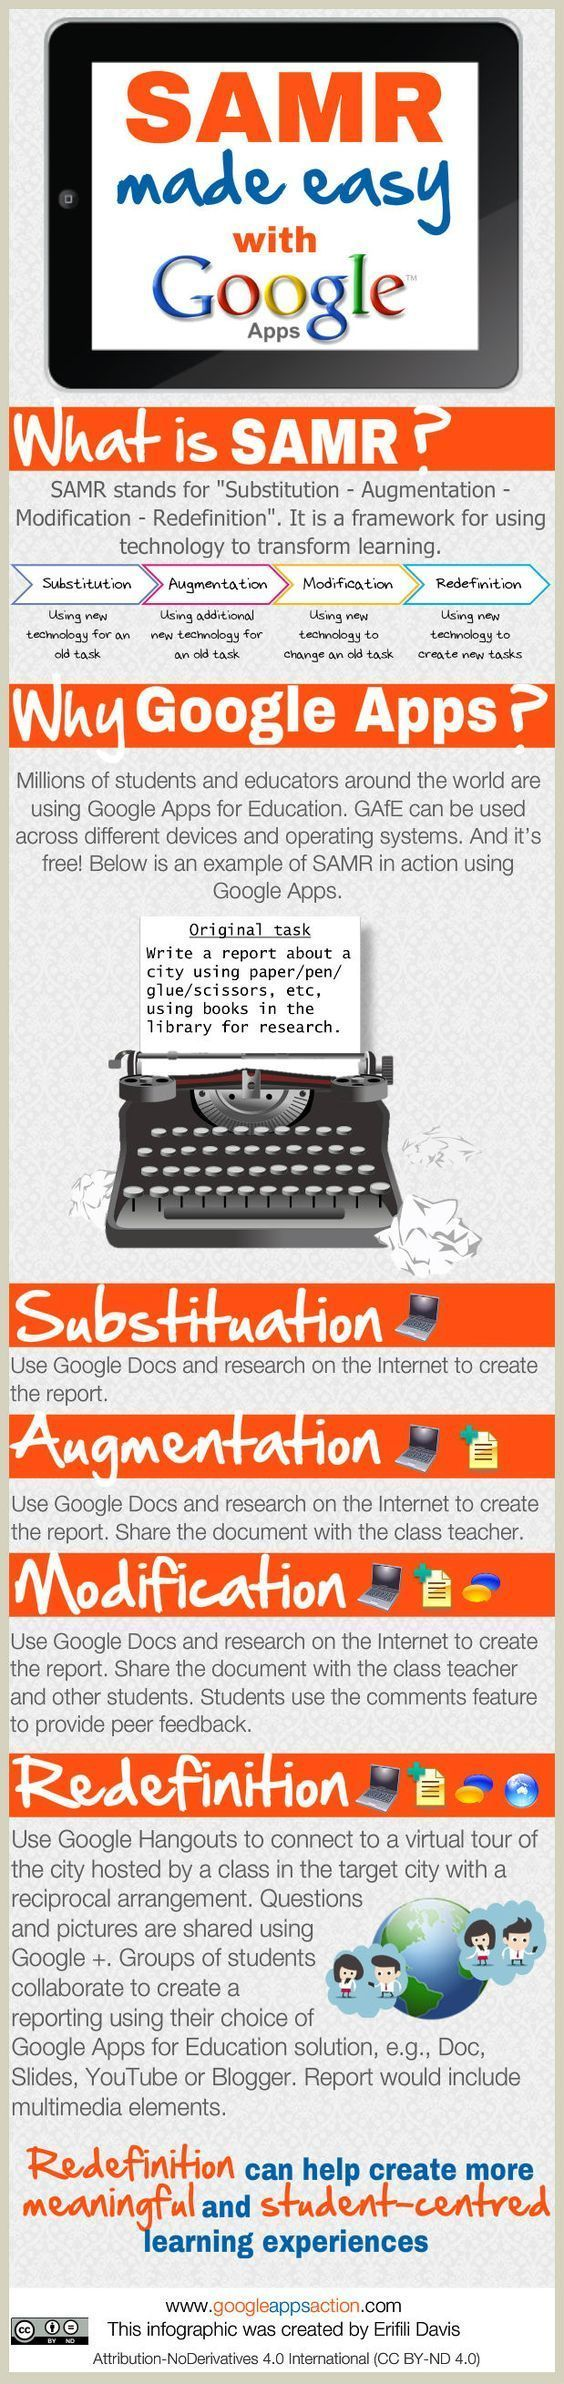 SAMR is easy to build with Google Apps. #edtech #infogra …